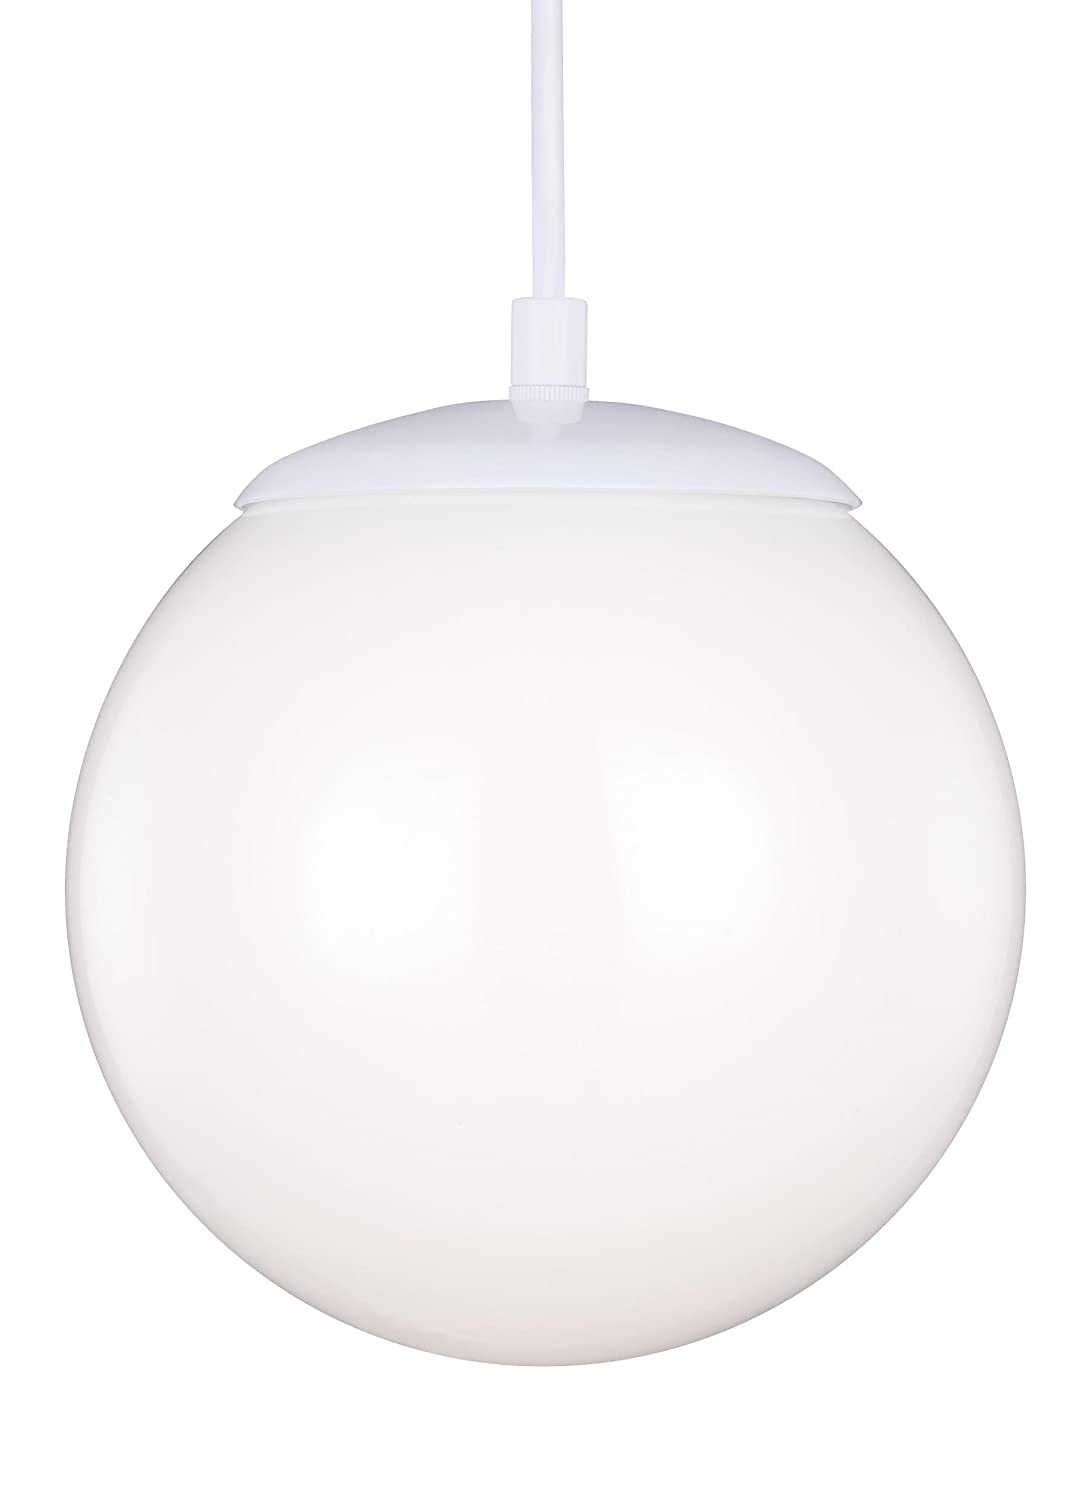 300bb6277c1 Sea Gull Lighting 6020-15 Hanging Globe One-Light Pendant with Smooth White  Glass Diffuser, White Finish - Ceiling Pendant Fixtures - Amazon.com